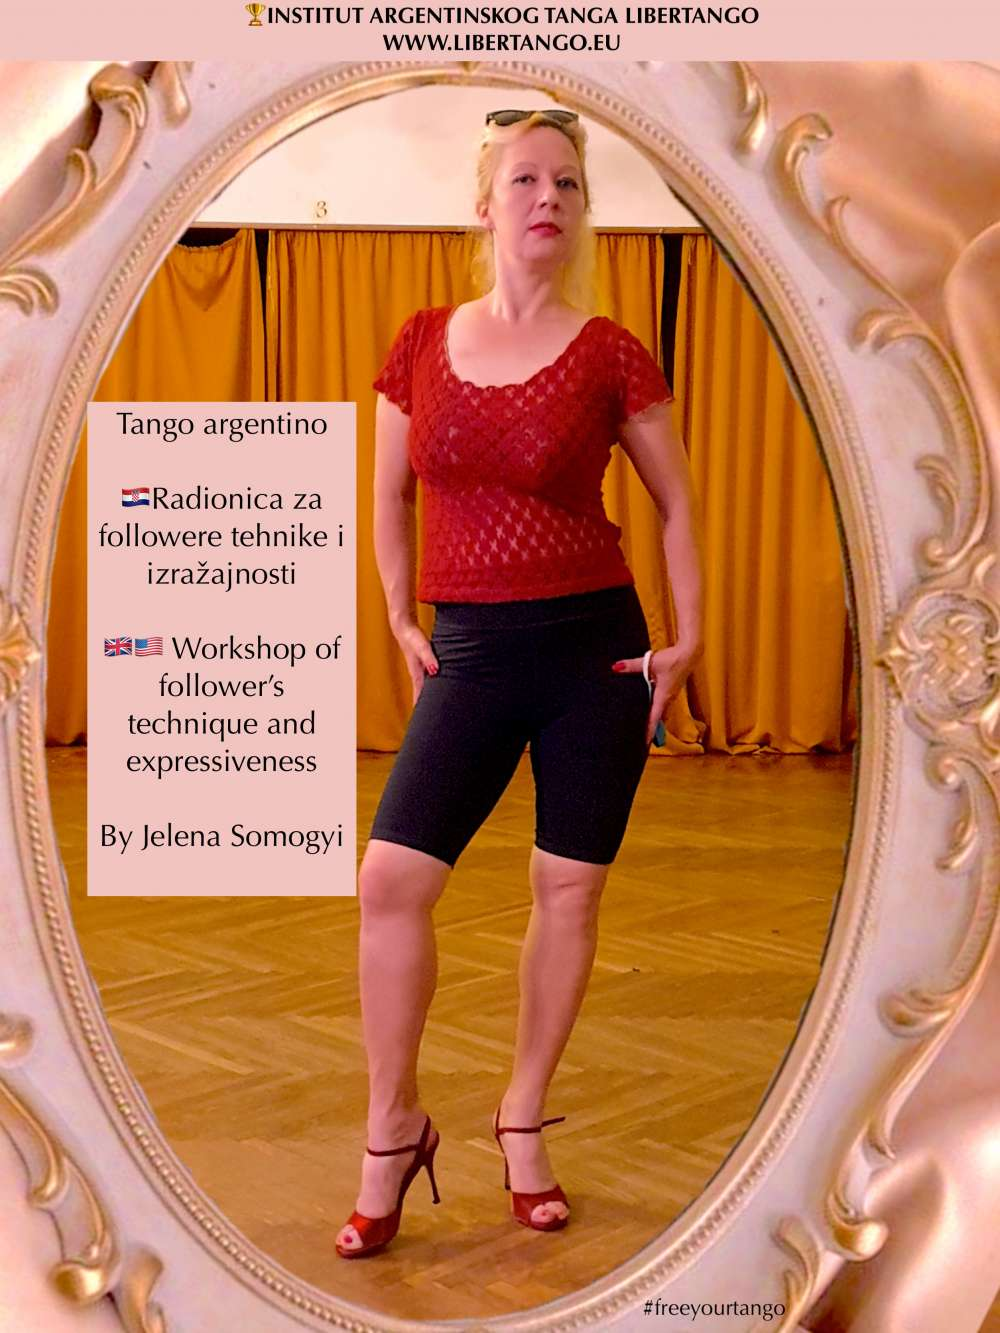 Argentine Tango Class, Workshop: For followers technique,expressiveness in hall and online